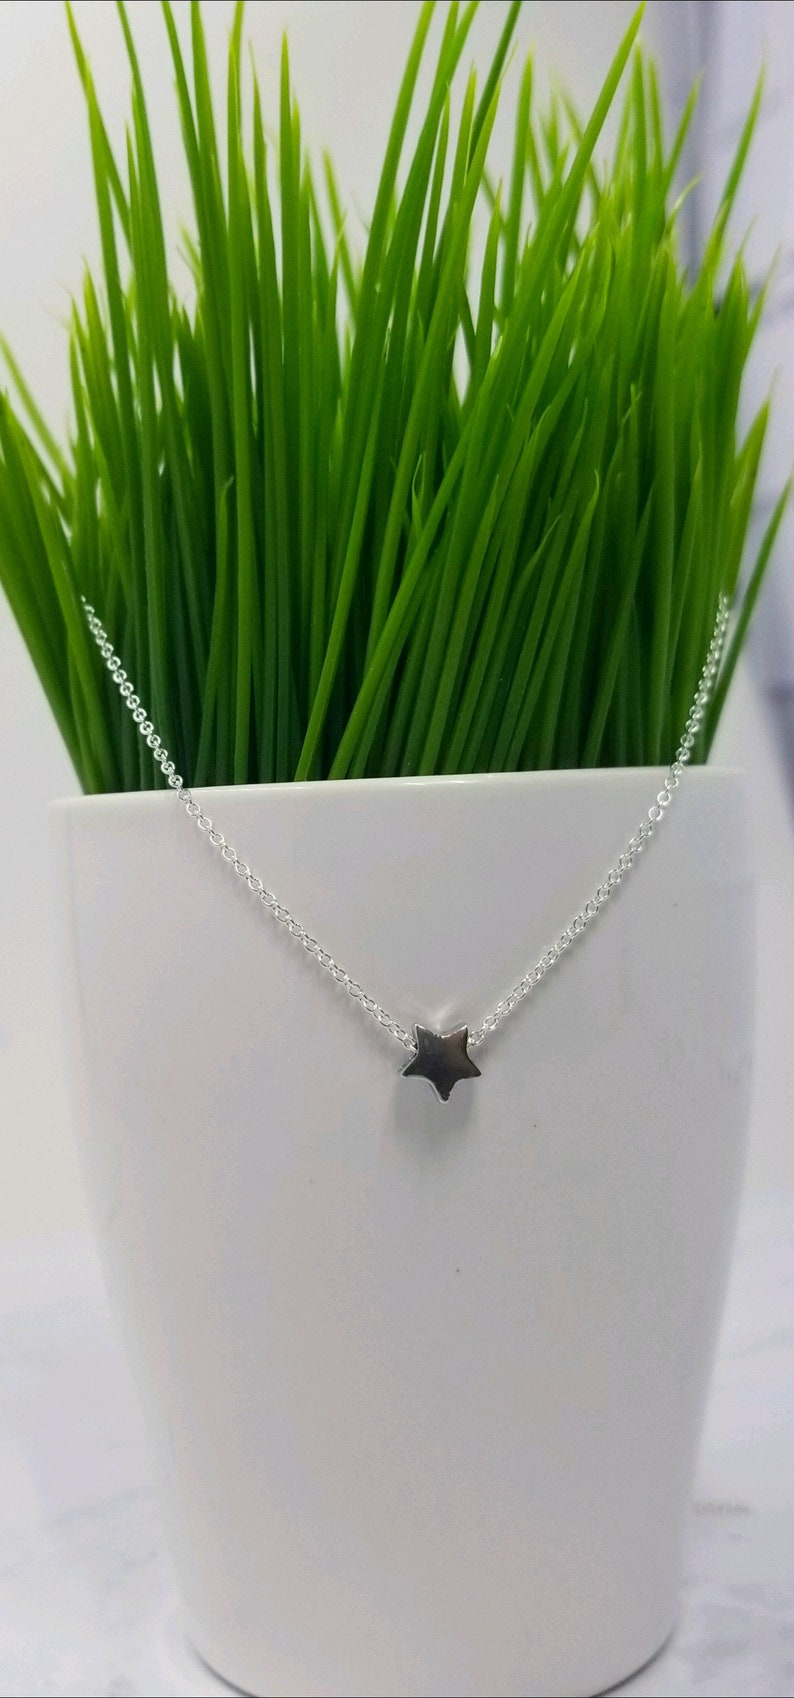 Tiny Sterling Silver Star Necklace Silver Star Jewelry Star image 0